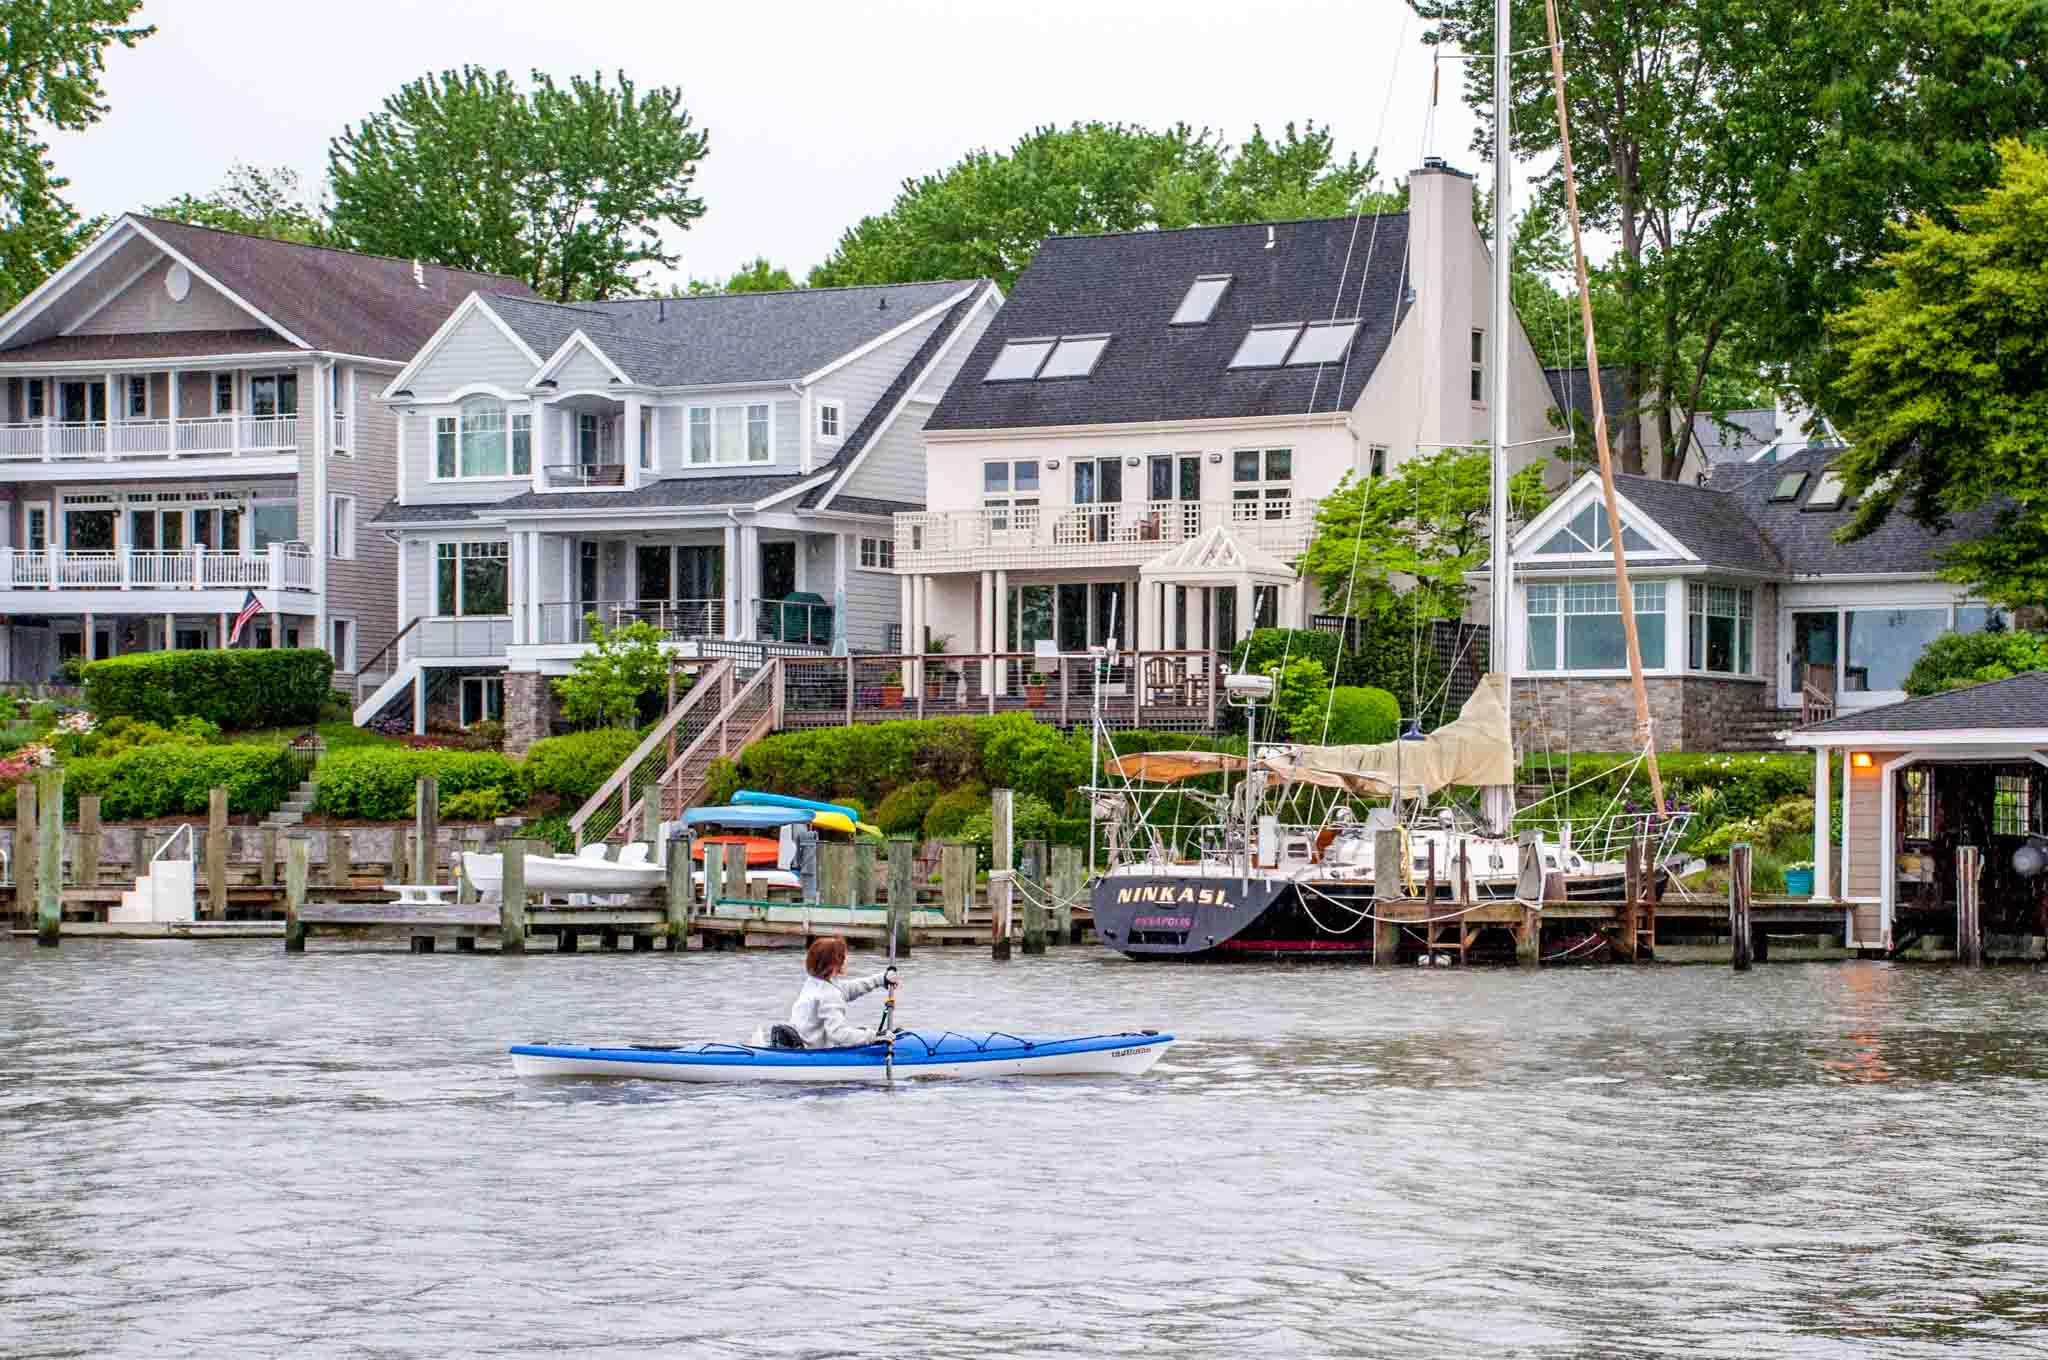 With Annapolis Electric Boats, you can drive your own boat and see views like this along the creeks